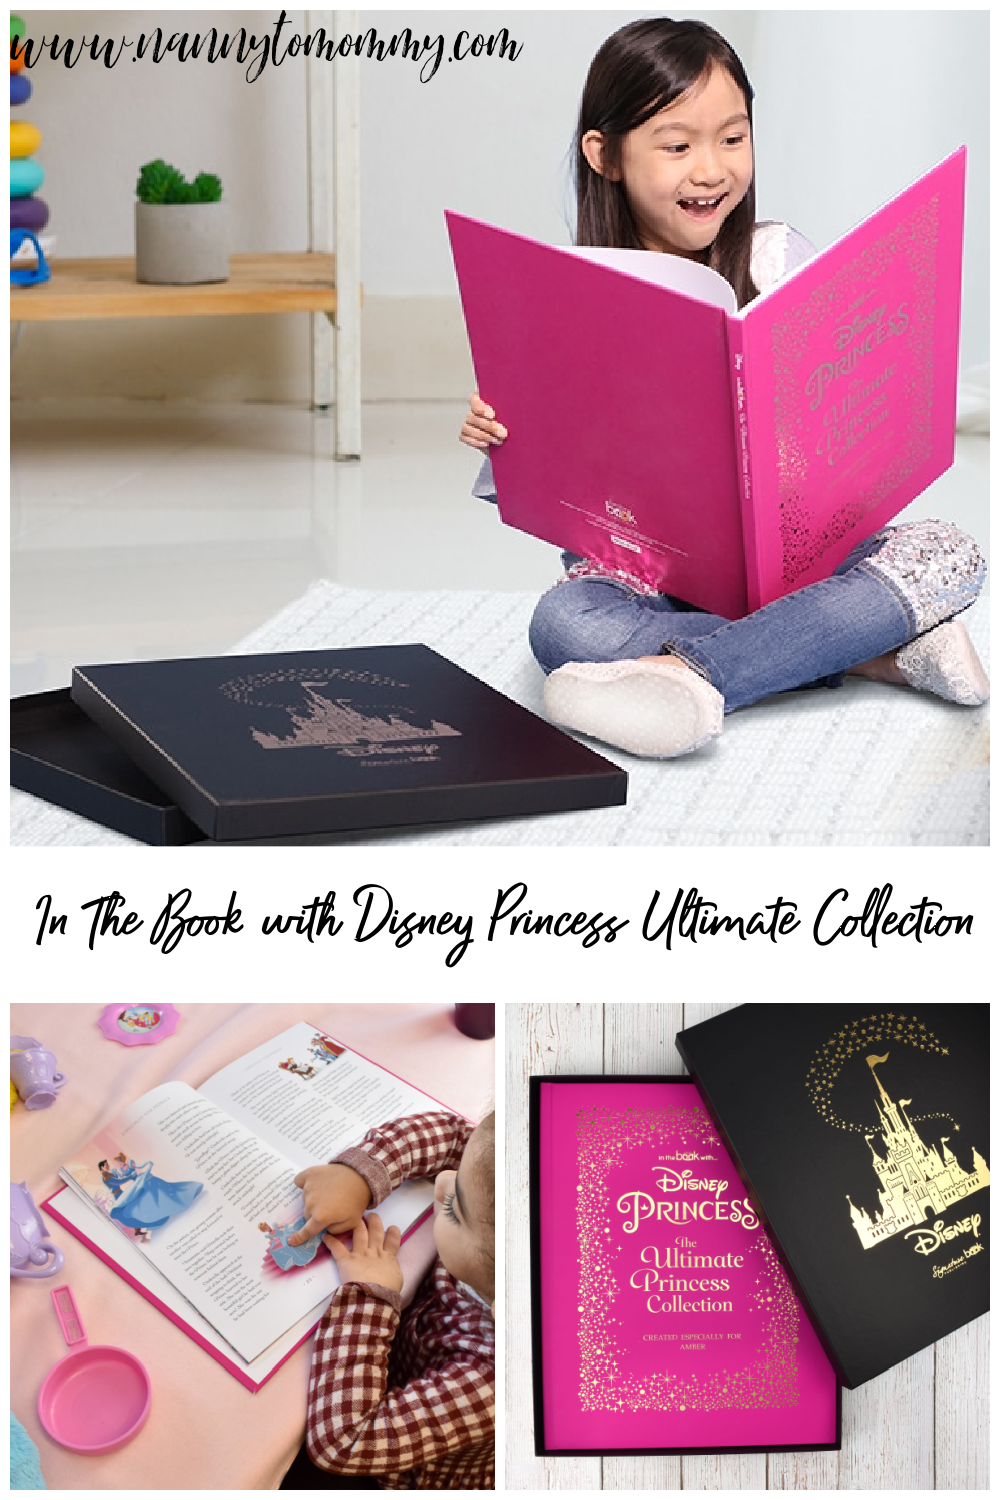 In The Book with Disney Princess Ultimate Collection